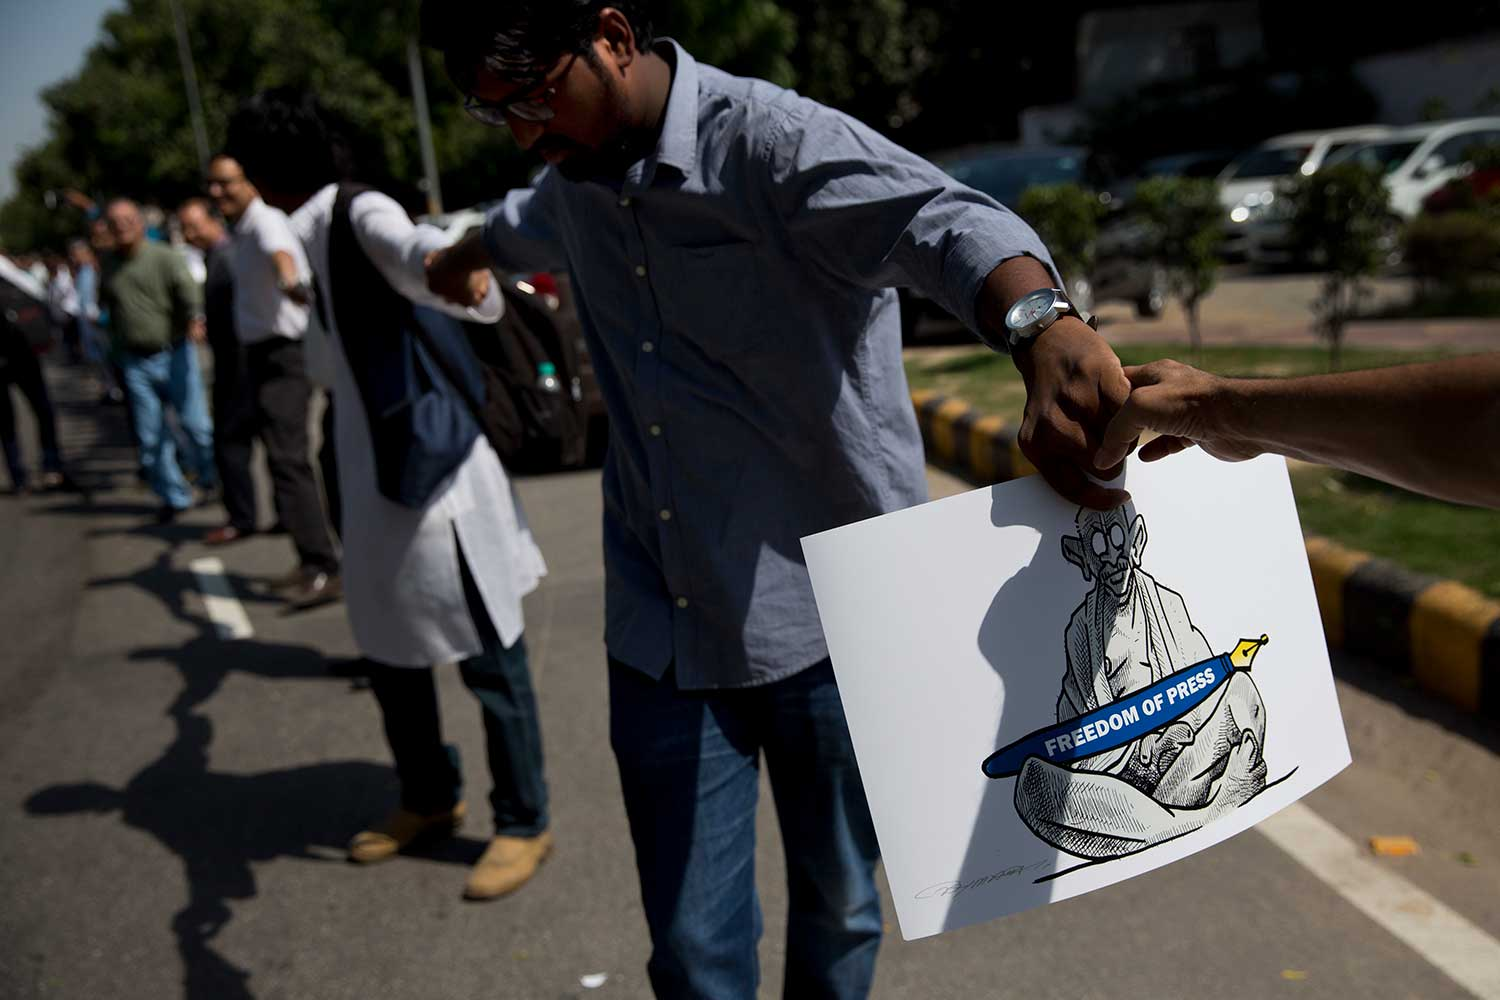 Indian journalists form a human chain near the Press Club of India to protest the killing of journalists in New Delhi on October 2, 2017. All murders of journalists in India have been carried out with complete impunity. (AP/Tsering Topgyal)